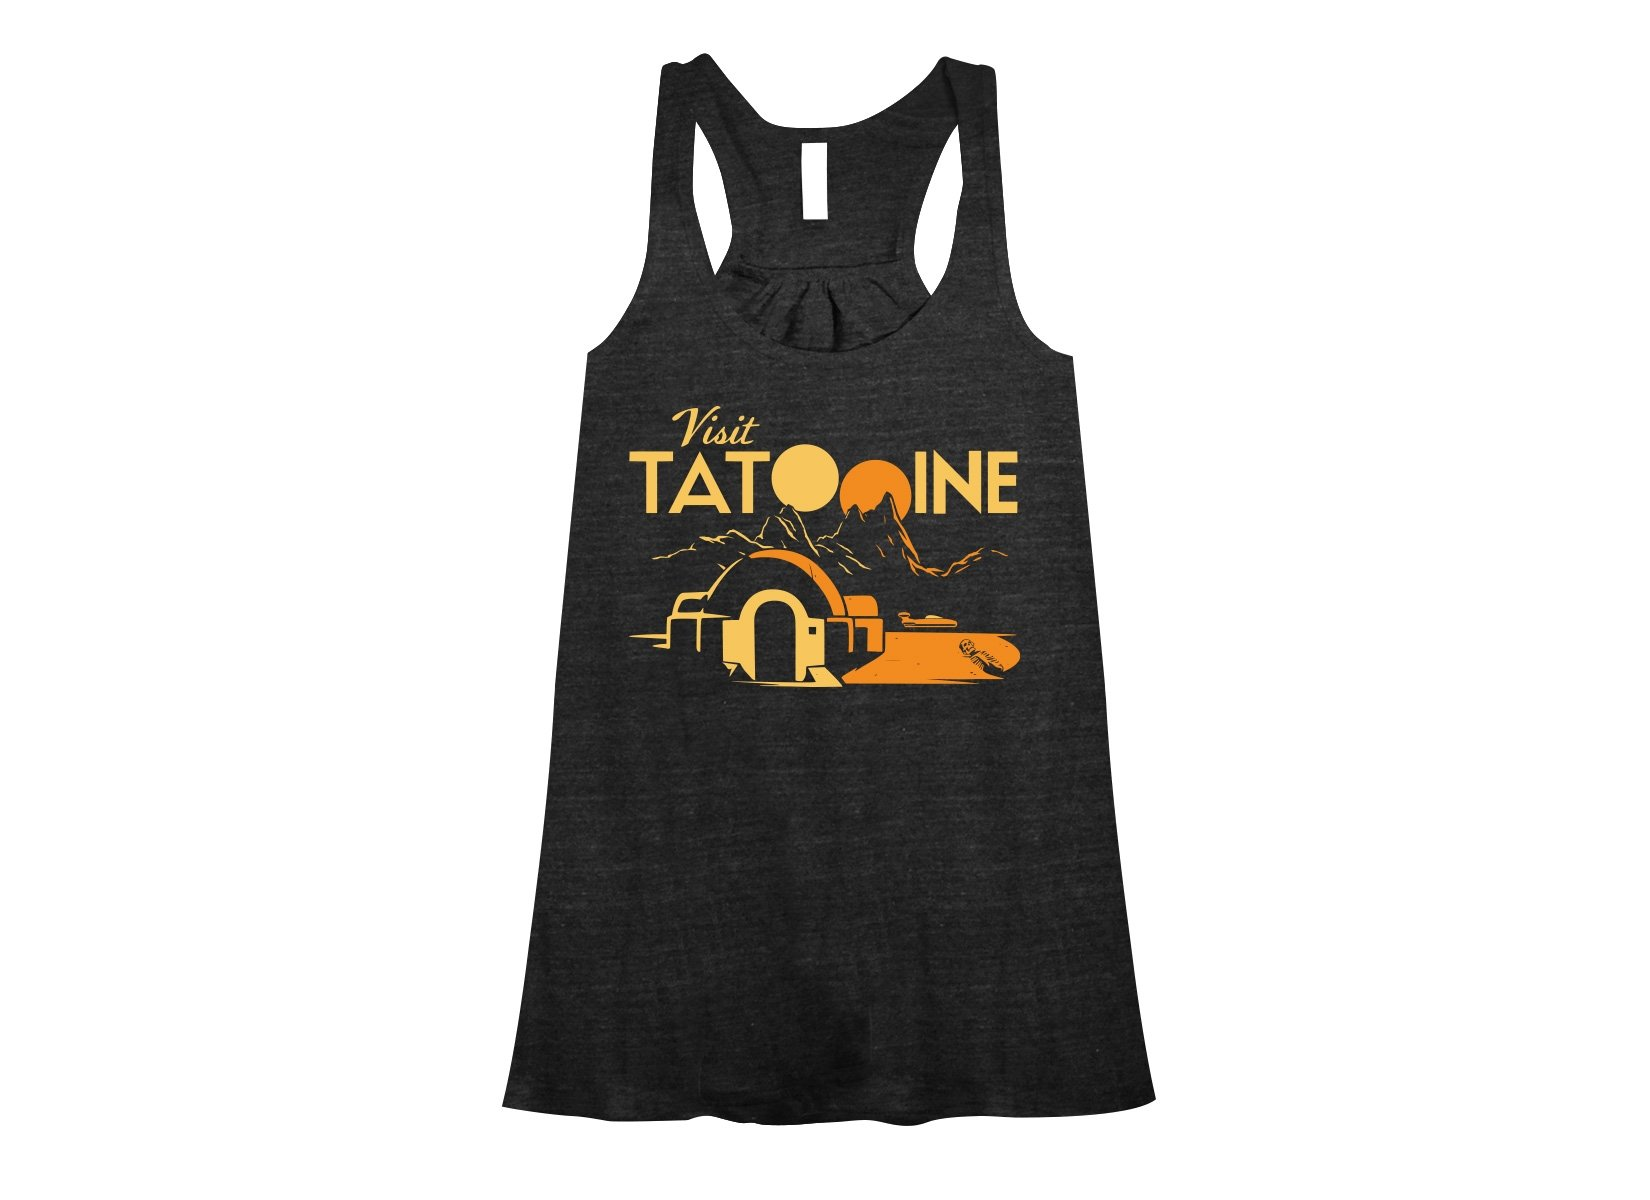 Visit Tatooine on Womens Tanks T-Shirt